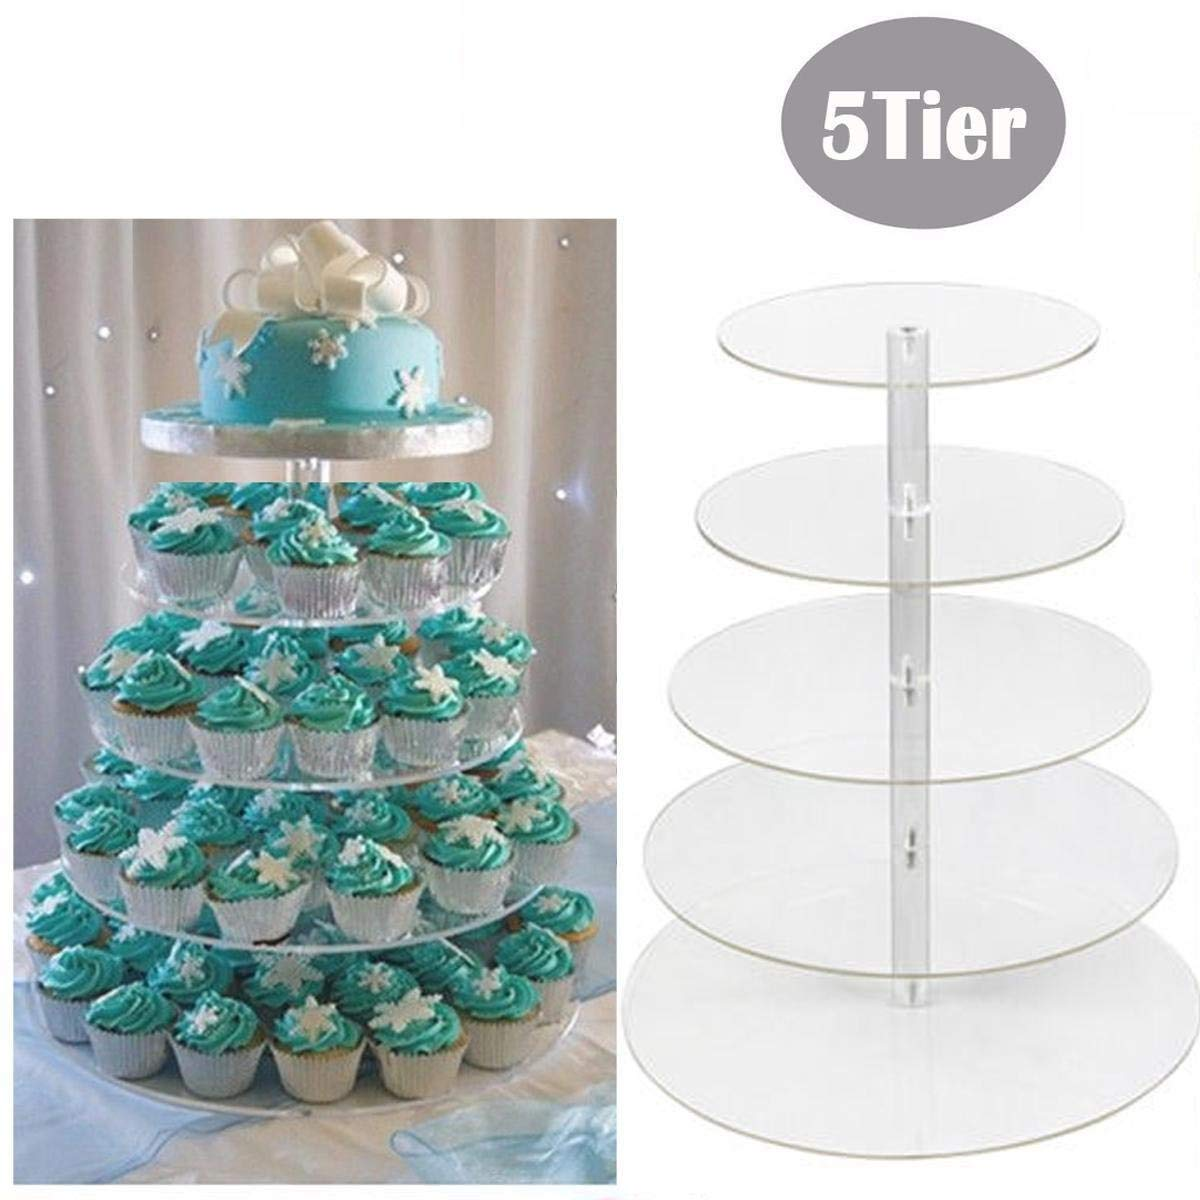 5 Tier Cupcake Stand, Crystal Clear Acrylic Cupcake Display Stand Round Tower Cupcake Dessert Display Stand (US Stock) (5 Tier) 5